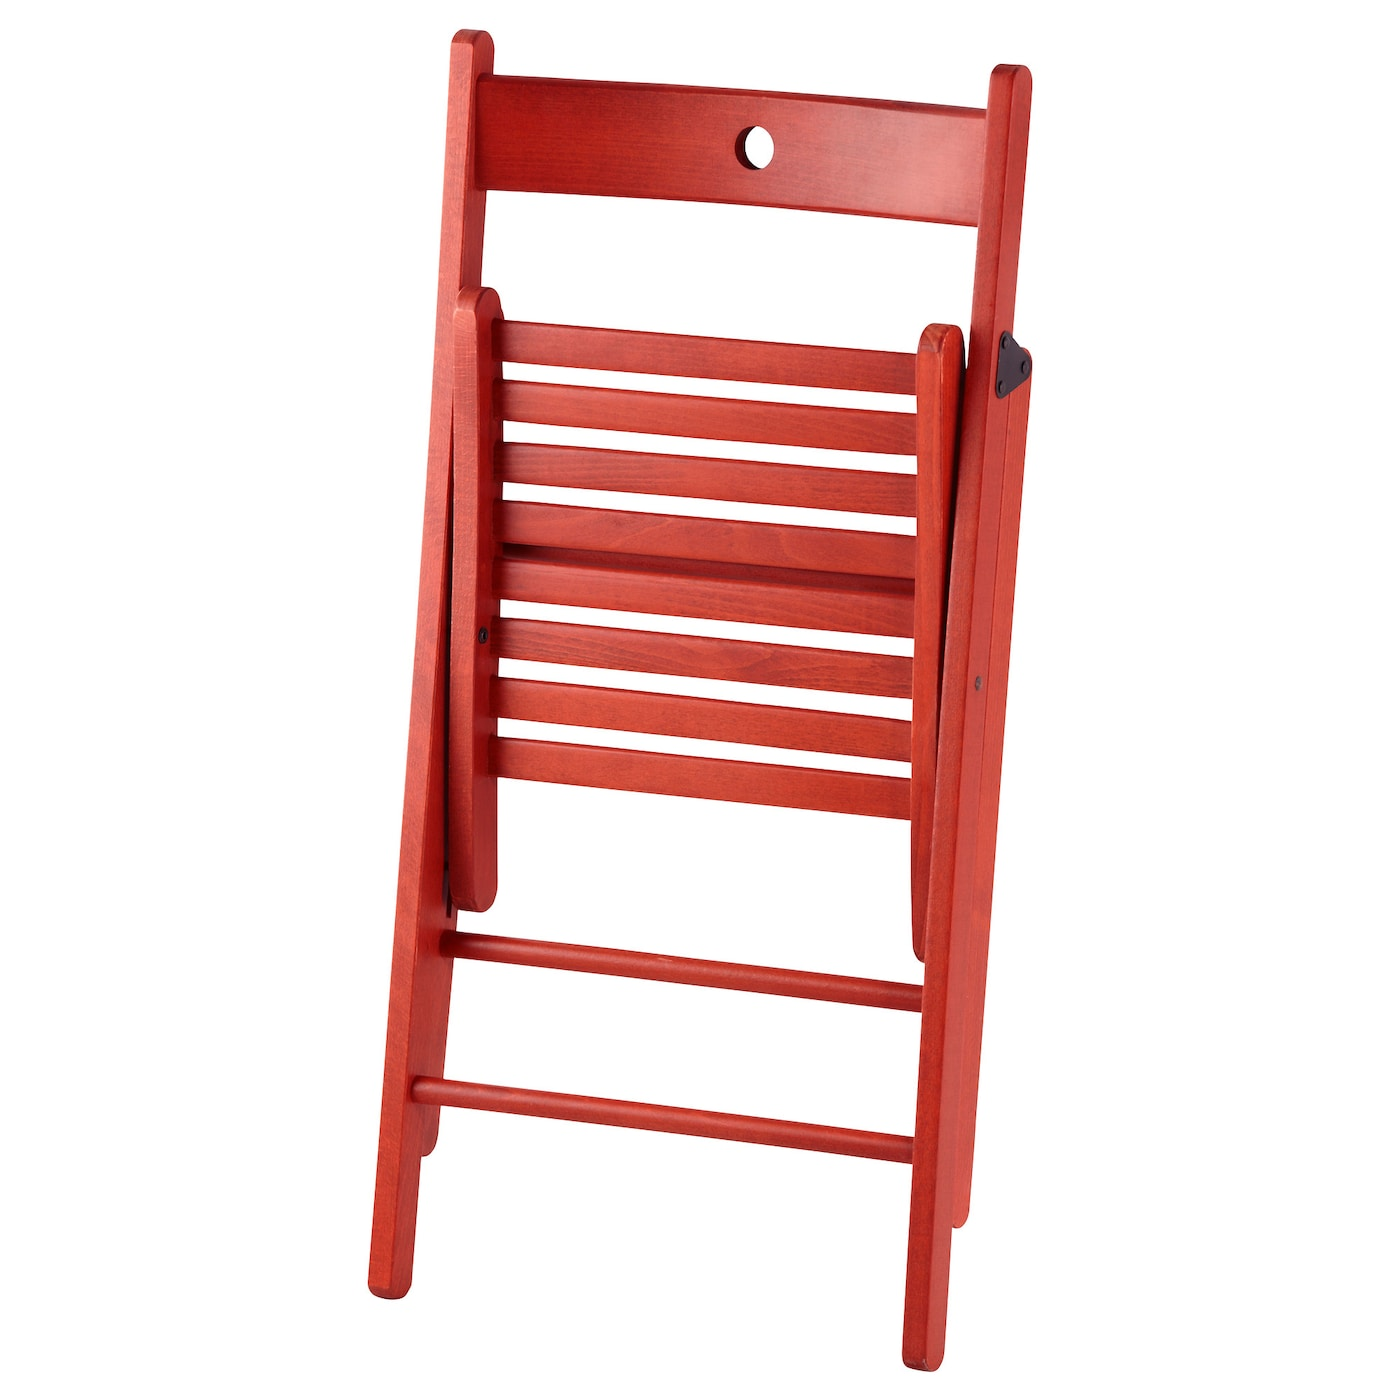 terje folding chair red ikea. Black Bedroom Furniture Sets. Home Design Ideas